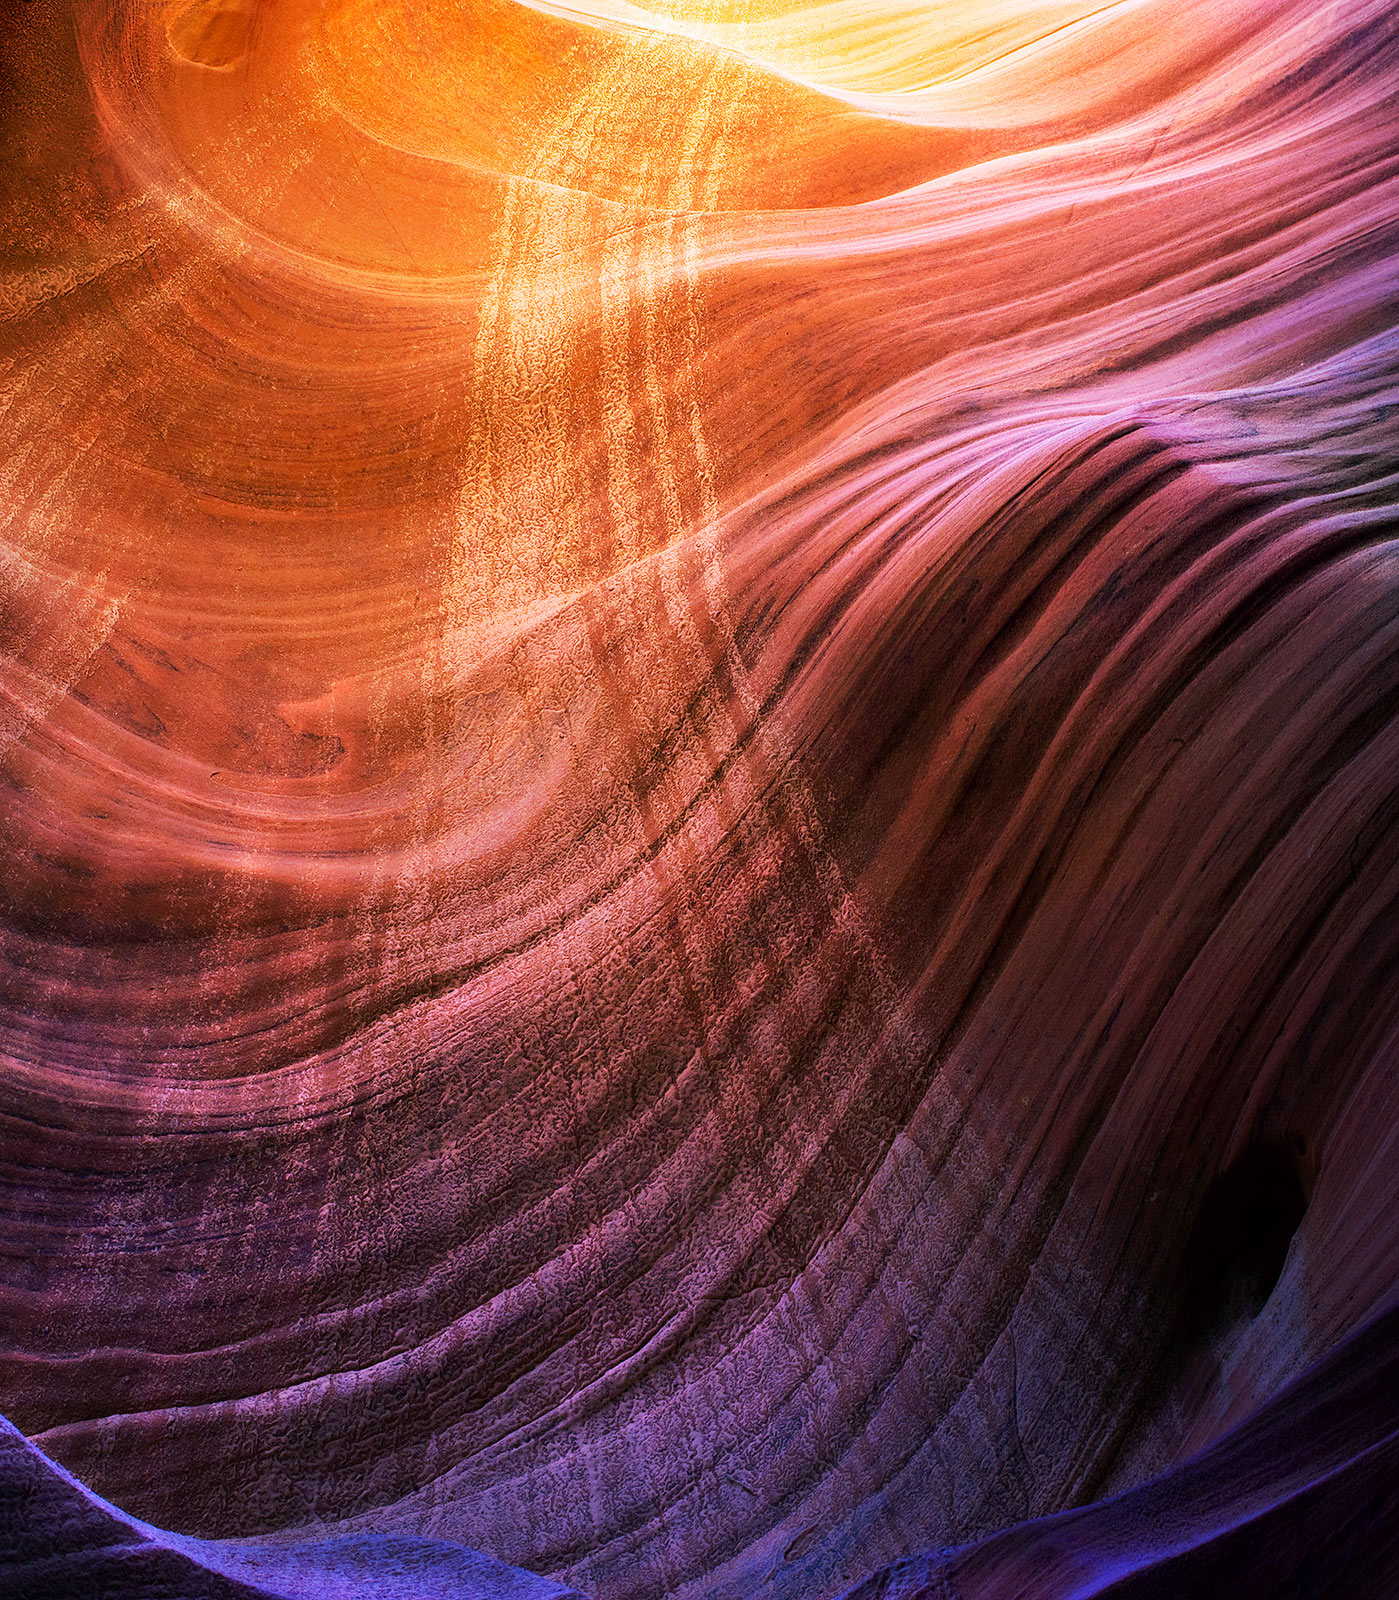 sandstone, waves, deep, canyon, slot canyon, waterfall, photo